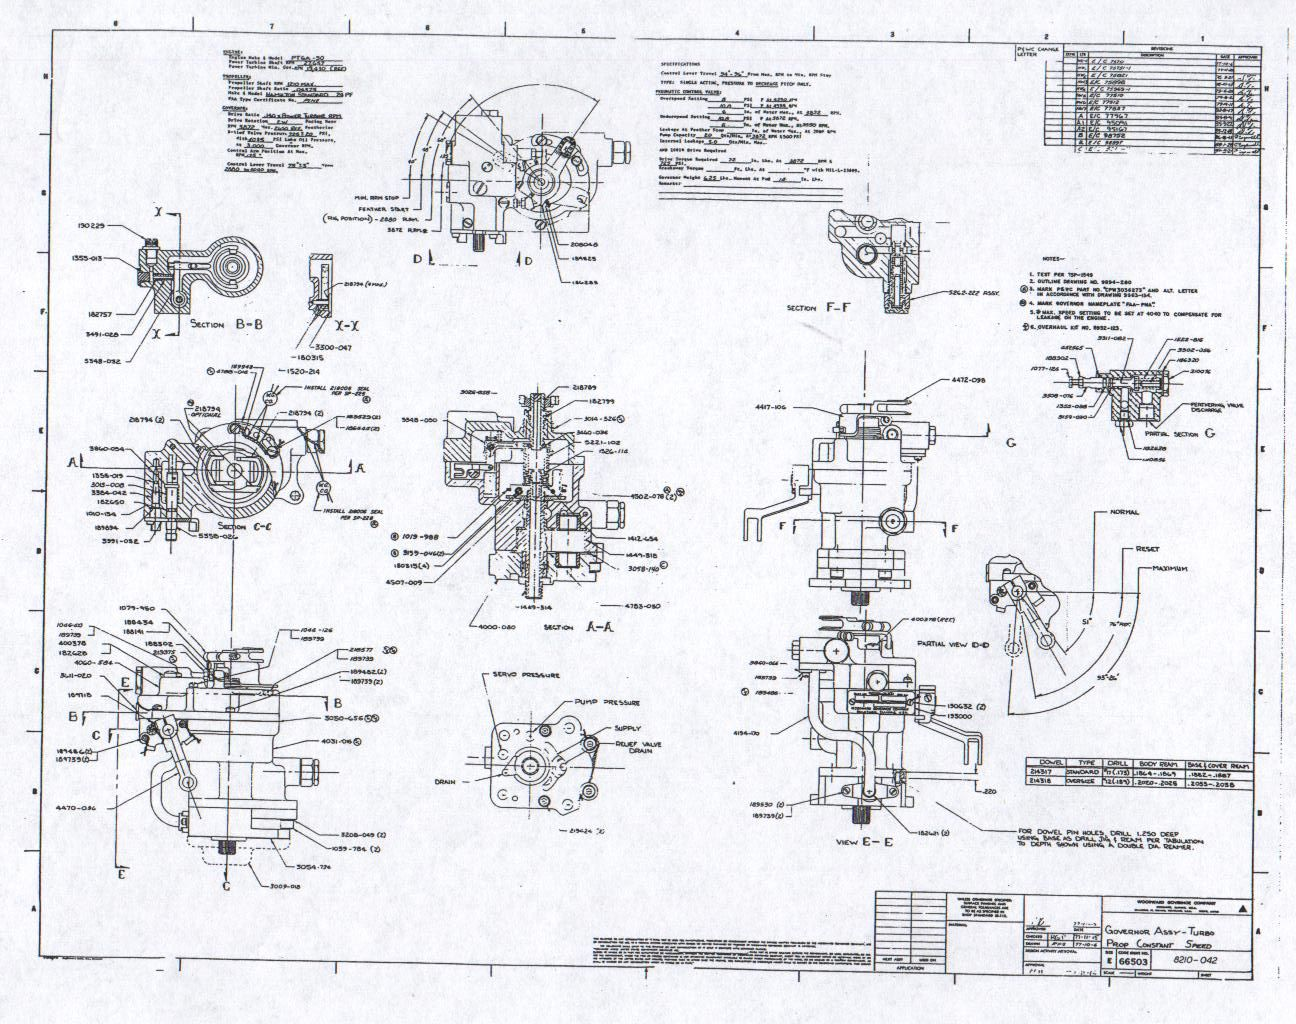 medium resolution of woodward aircraft propeller governor schematic drawing woodward governor aircraft propeller operations management